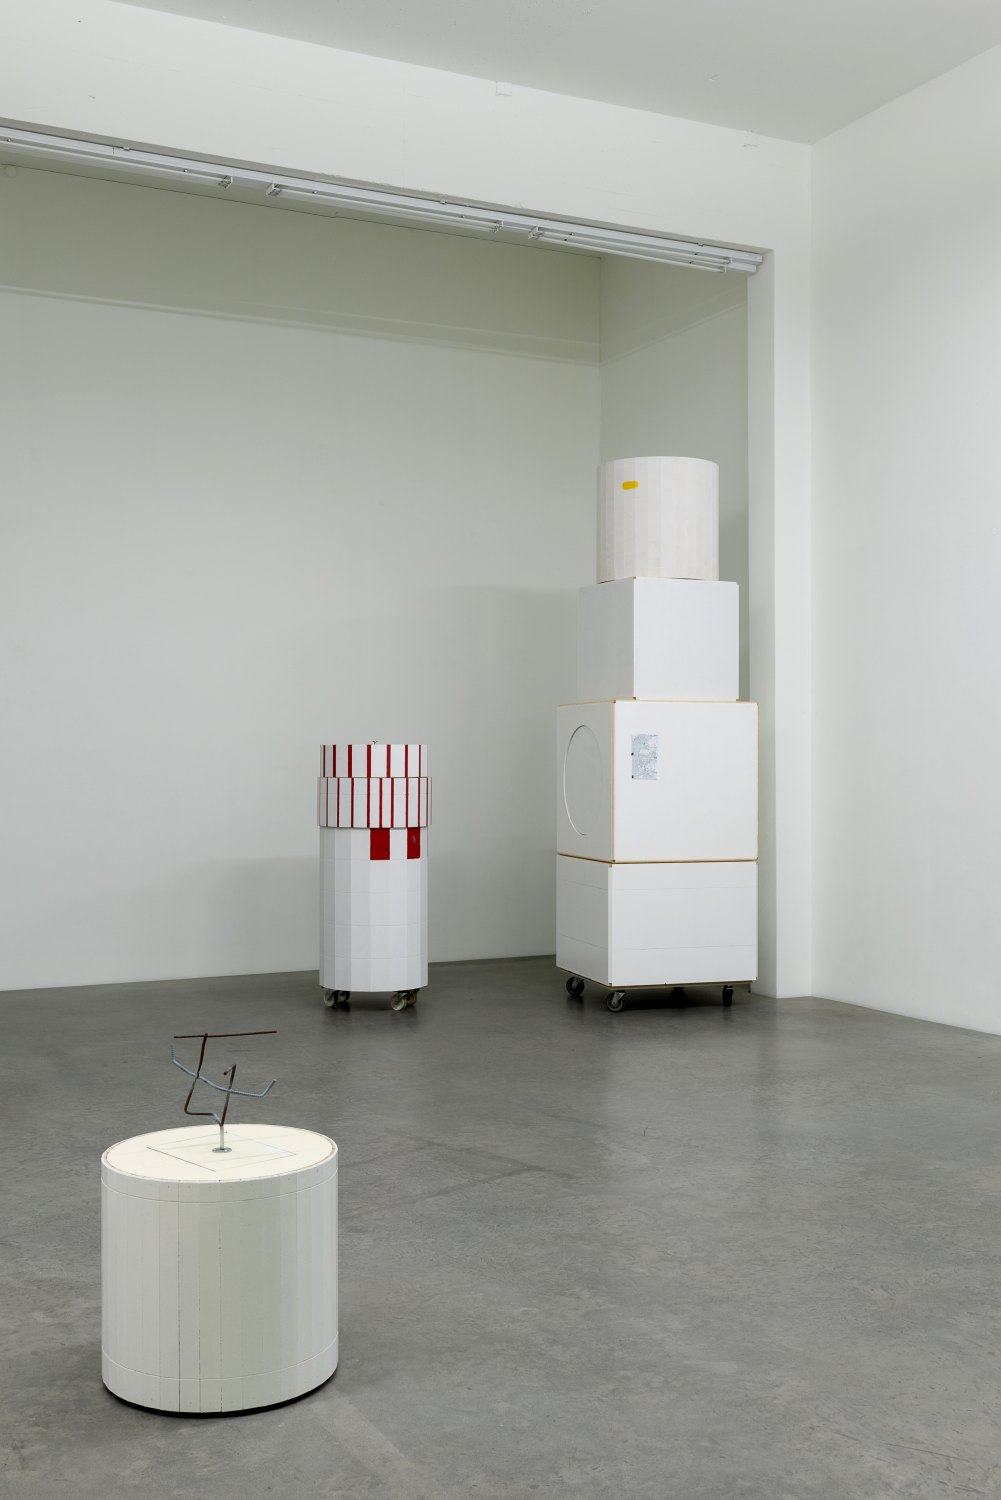 Manfred Pernice, Teile & peile Installation view, Galerie Neu, Berlin 2015